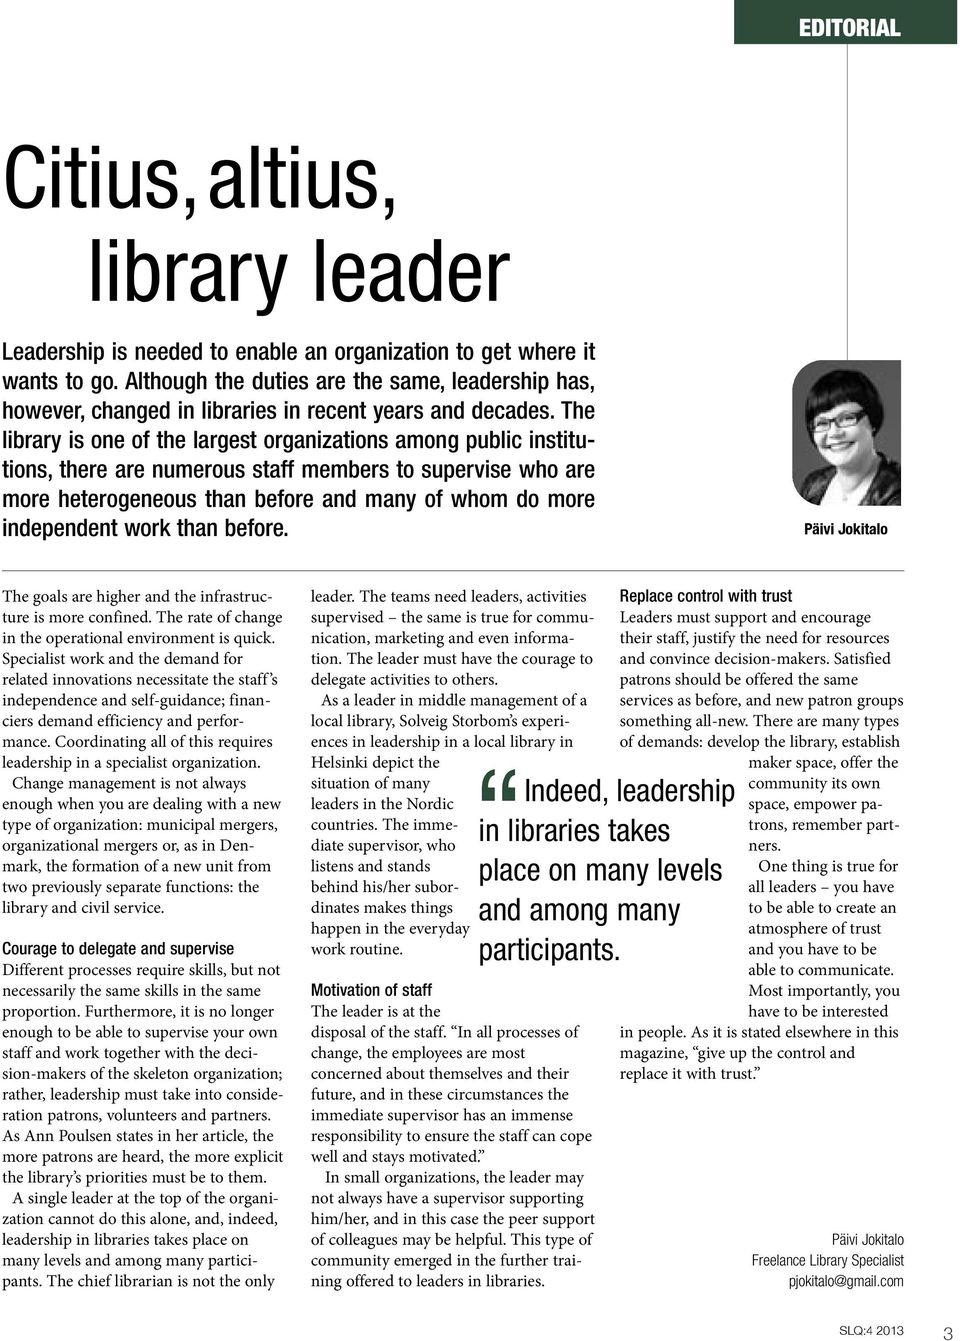 The library is one of the largest organizations among public institutions, there are numerous staff members to supervise who are more heterogeneous than before and many of whom do more independent